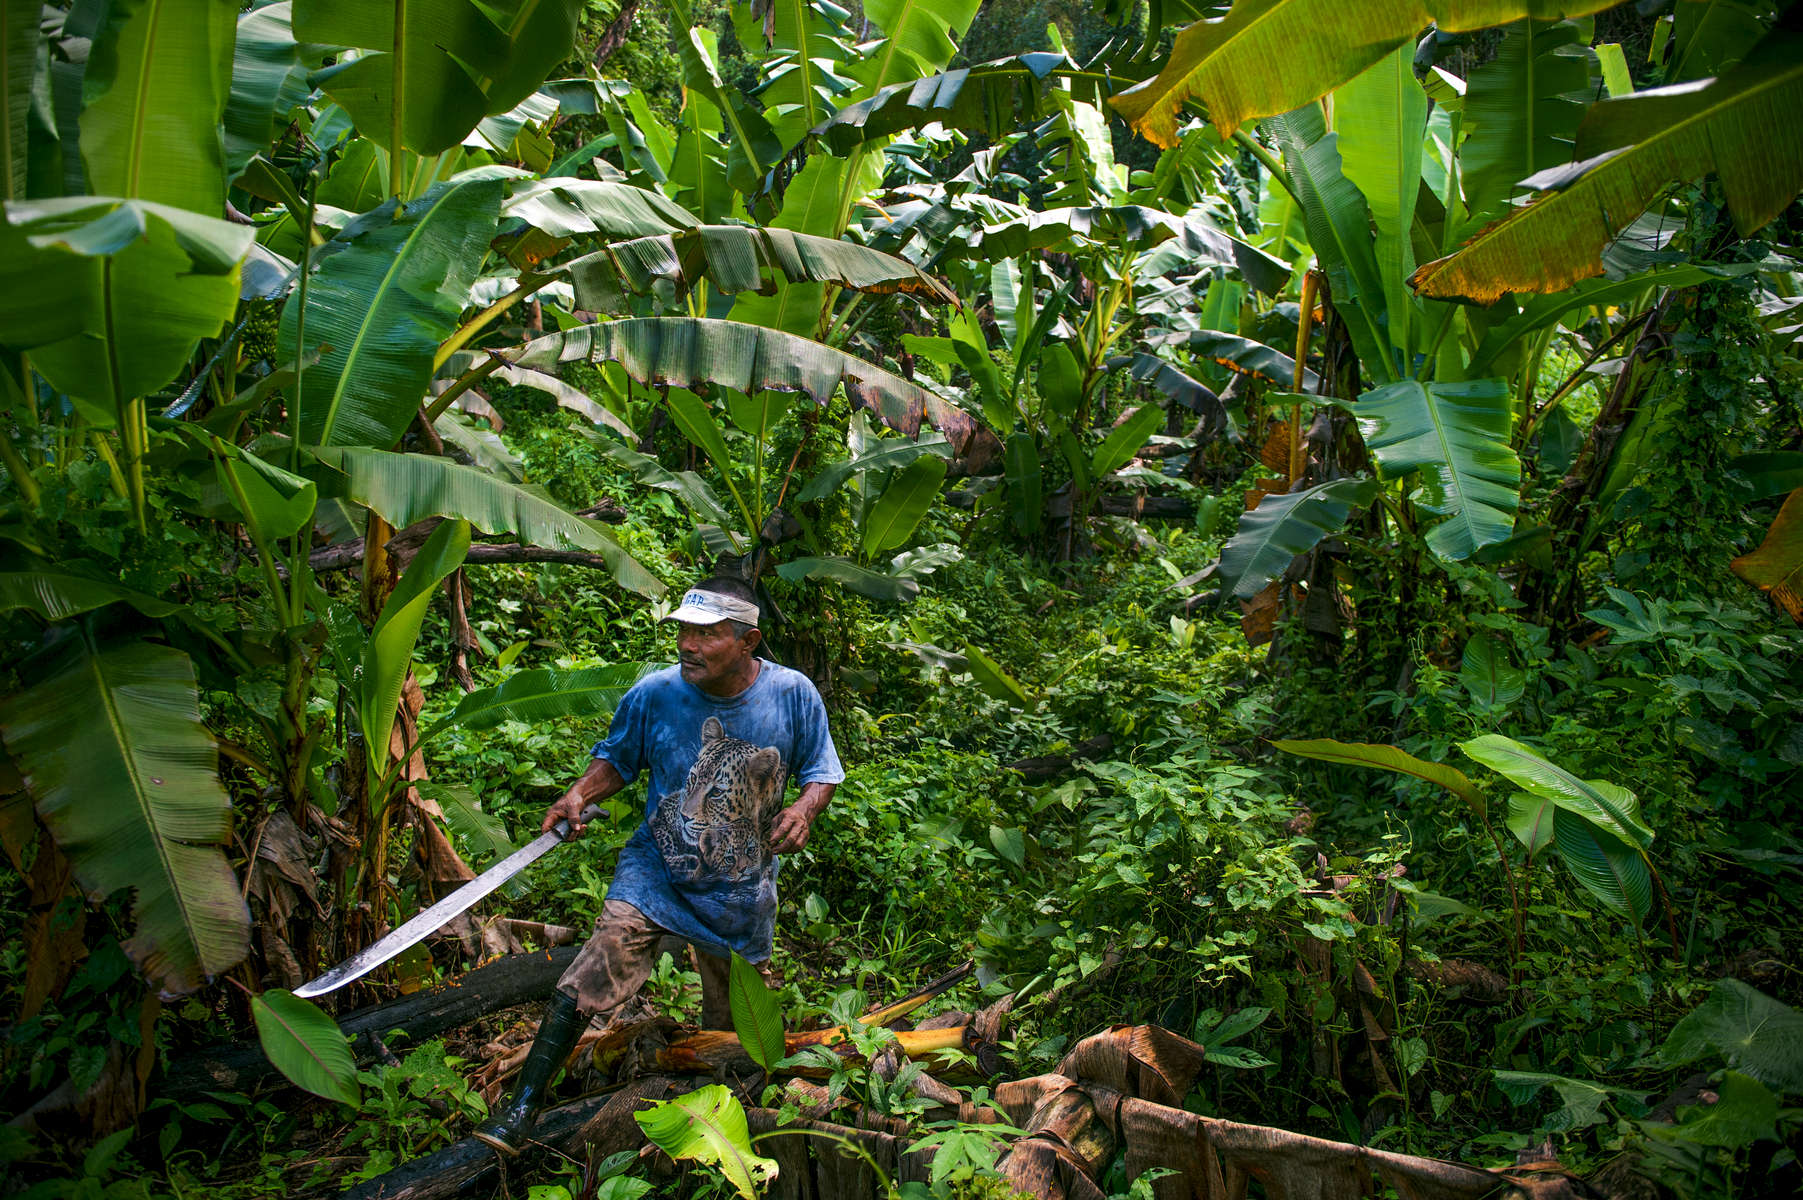 Bangkukuk resident Edwin McCrea prepares to cut down bananas in a part of the jungle where he grows subsistence crops to keep his family going.